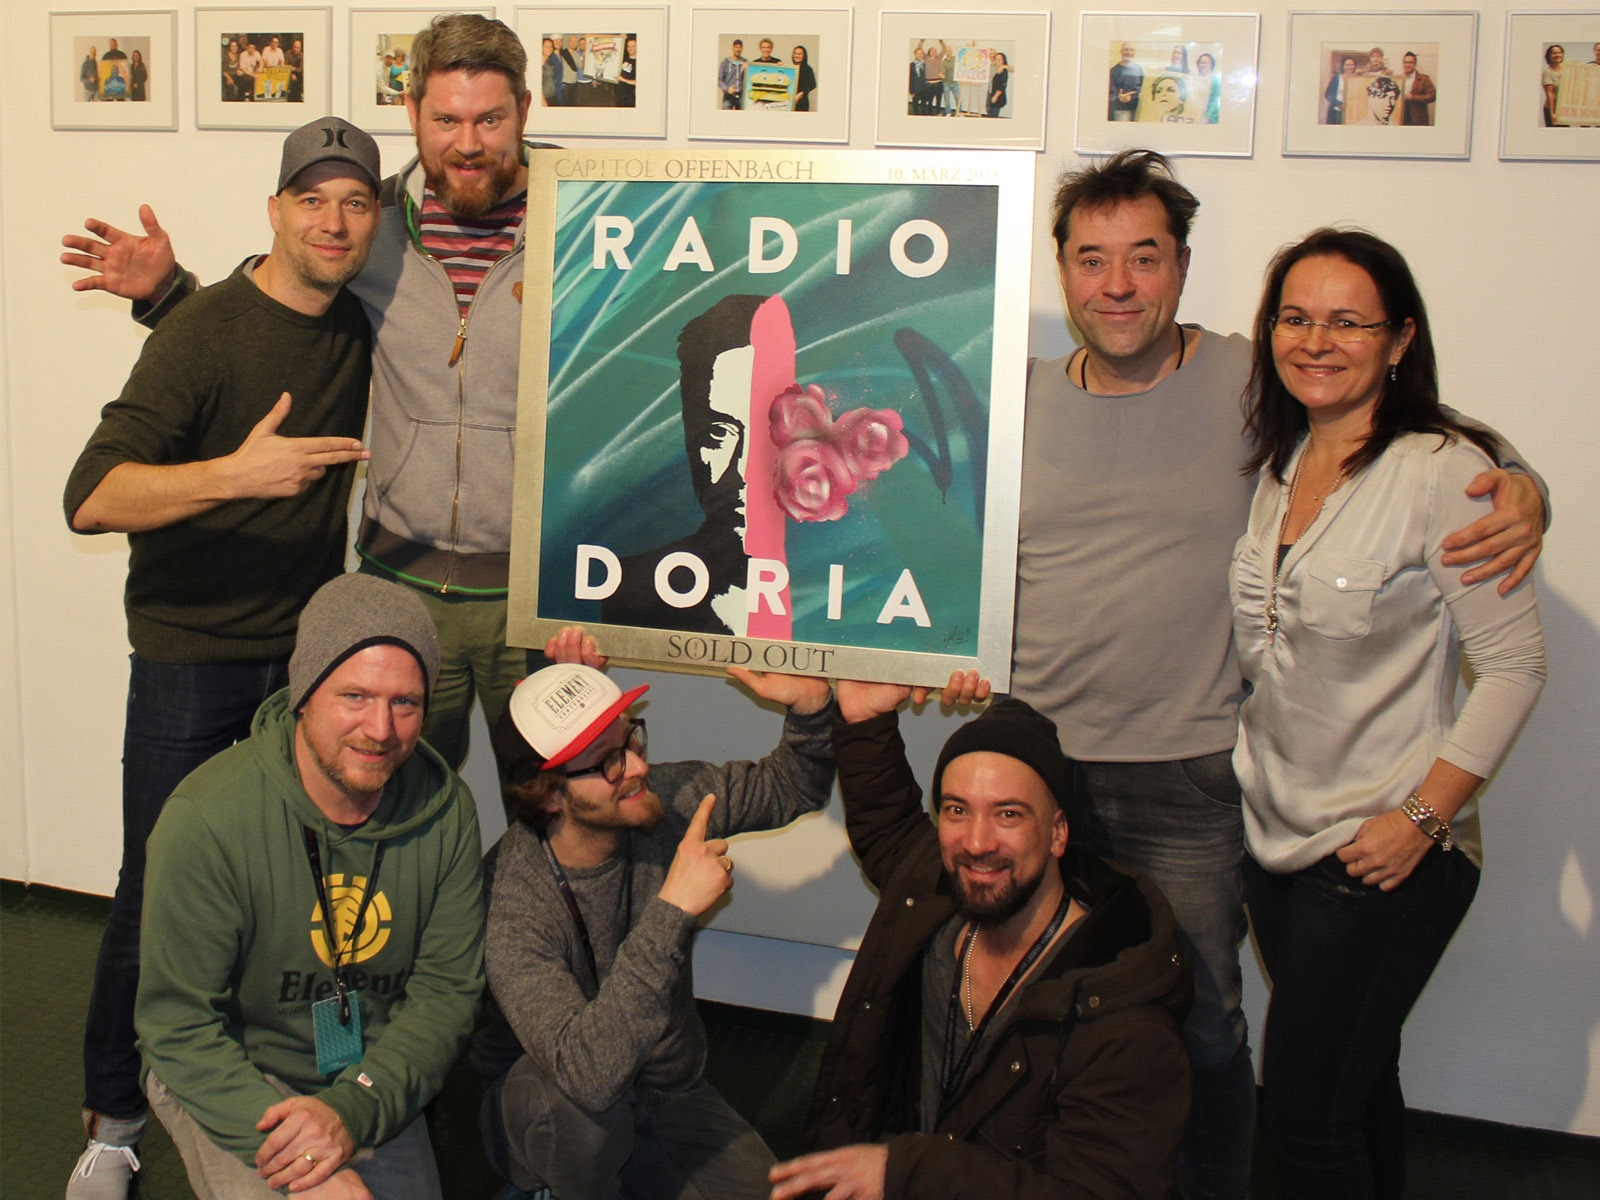 graffitiauftrag_artmos4_sold_out_award_radio_doria_Stadthalle_Offenbach_Leinwand_Graffiti